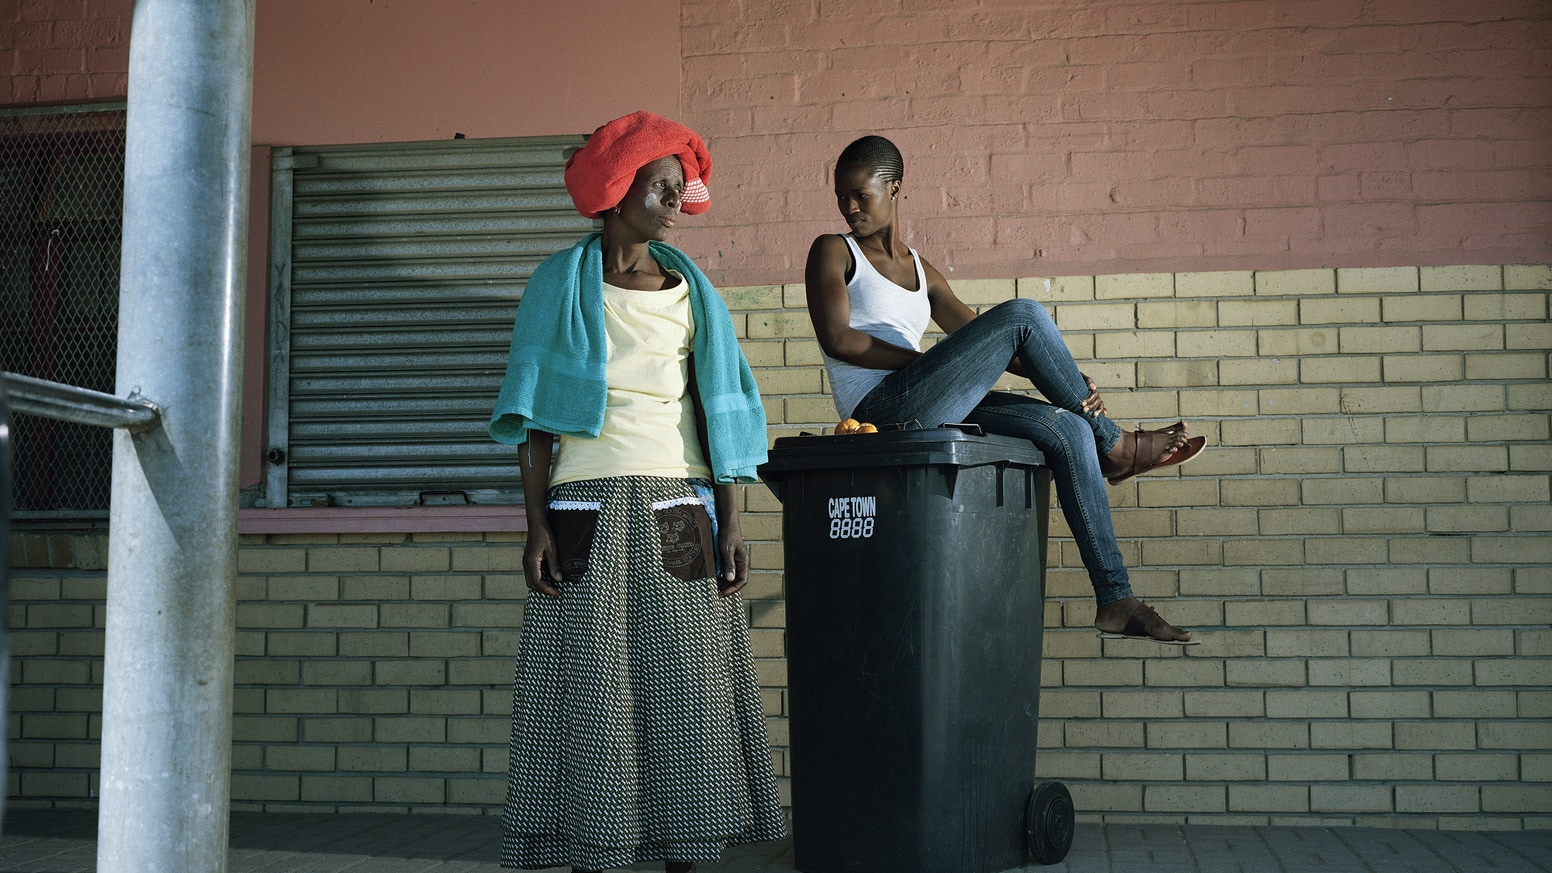 The daily lives, between ritual and community life of the Sangomas women, in a township near Cape town. Exhibit and book.